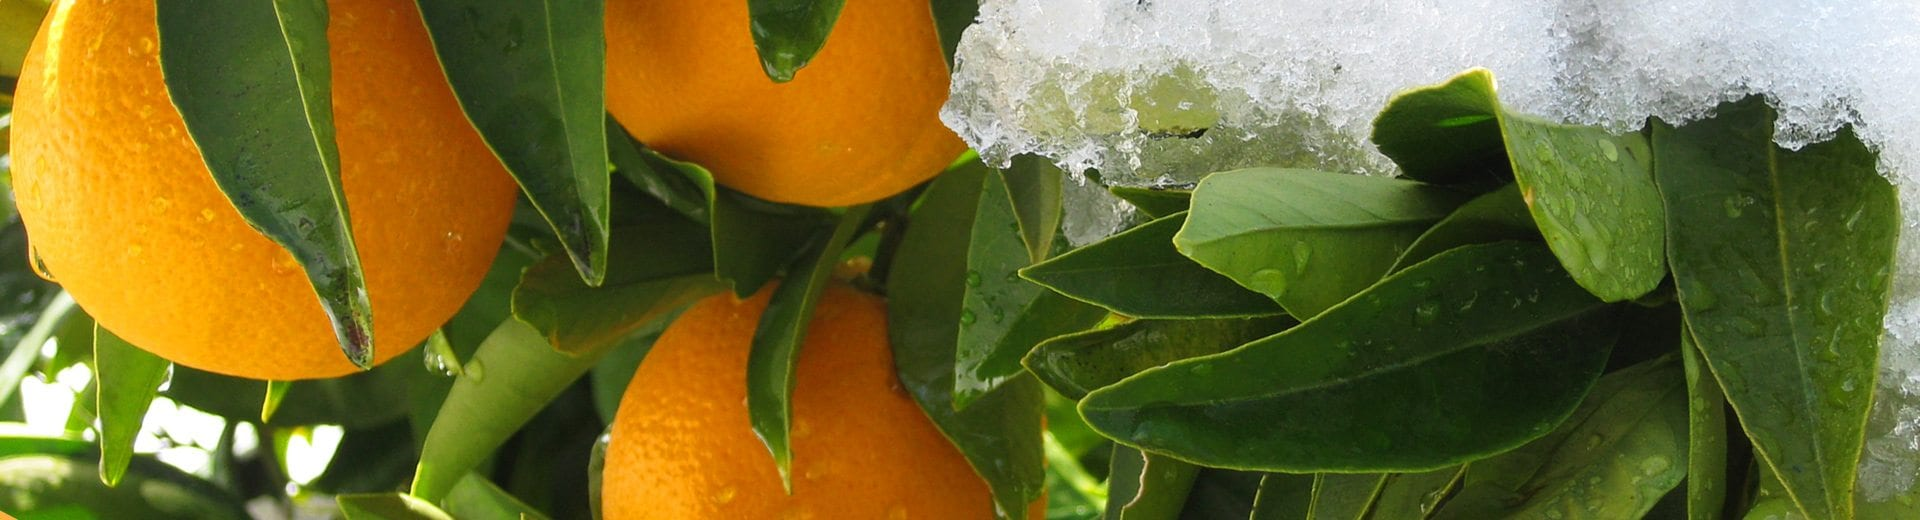 Give a Delicious Gift and Enjoy our Winter Citrus all Year Long